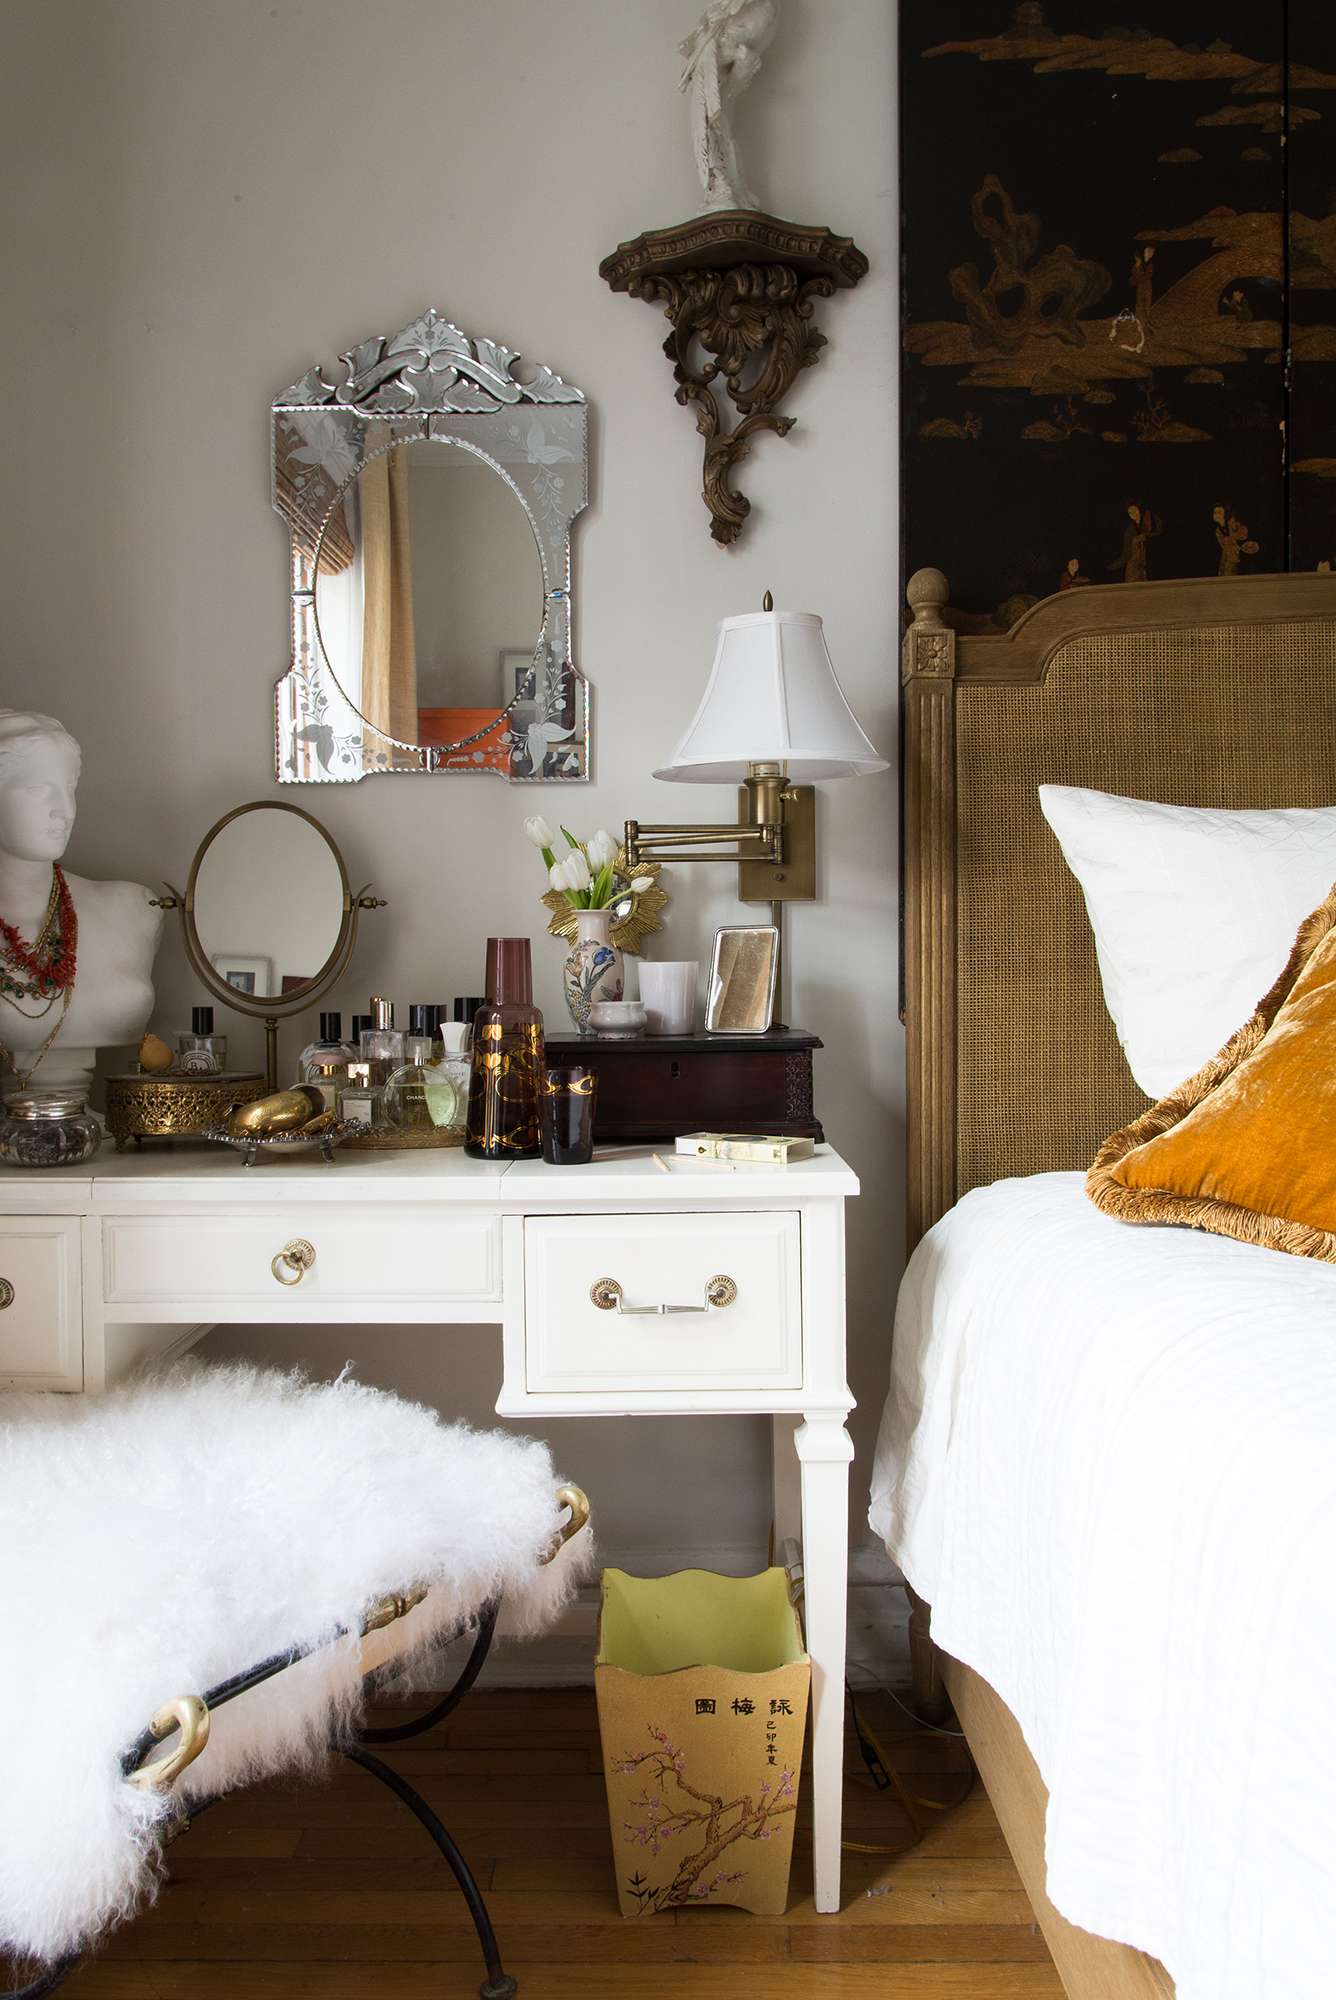 Bedroom Sconces | Image: Claire Esparros of Homepolish